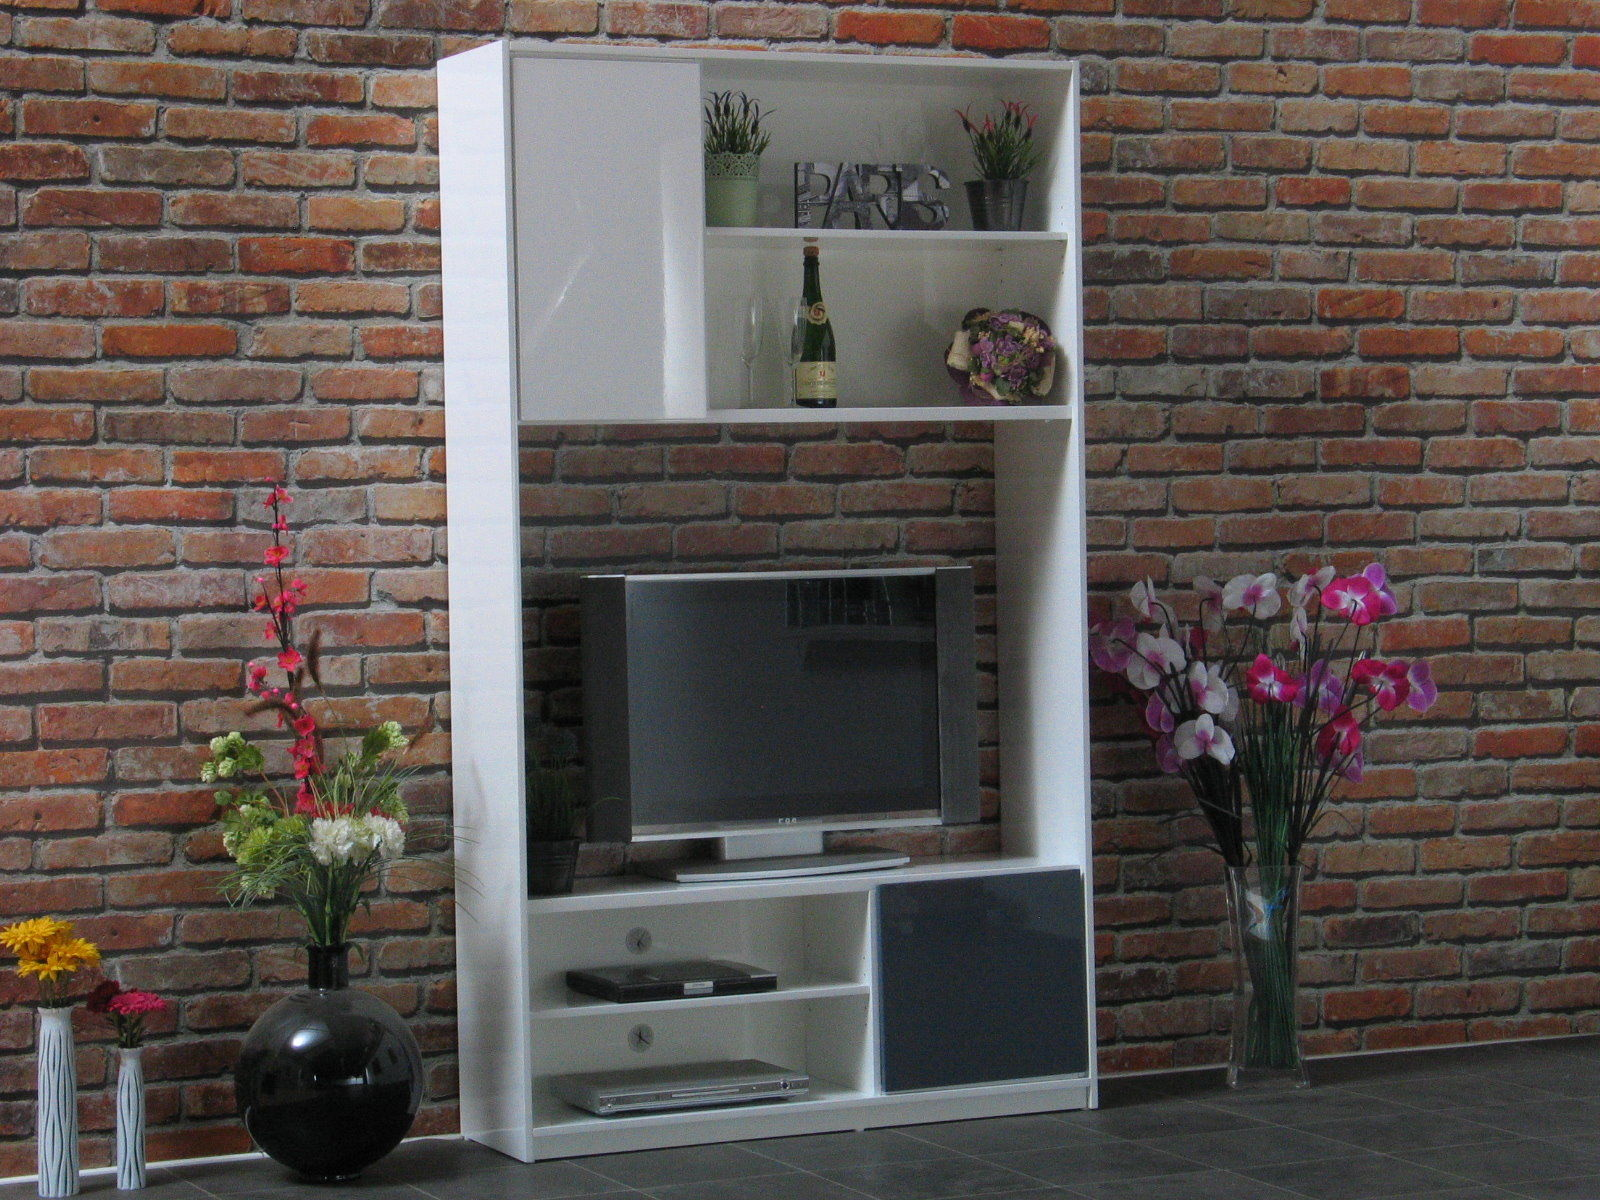 wohnwand uptown hochglanz grau weiss schrankwand regal tv hifi fernseher m bel kaufen bei dtg. Black Bedroom Furniture Sets. Home Design Ideas